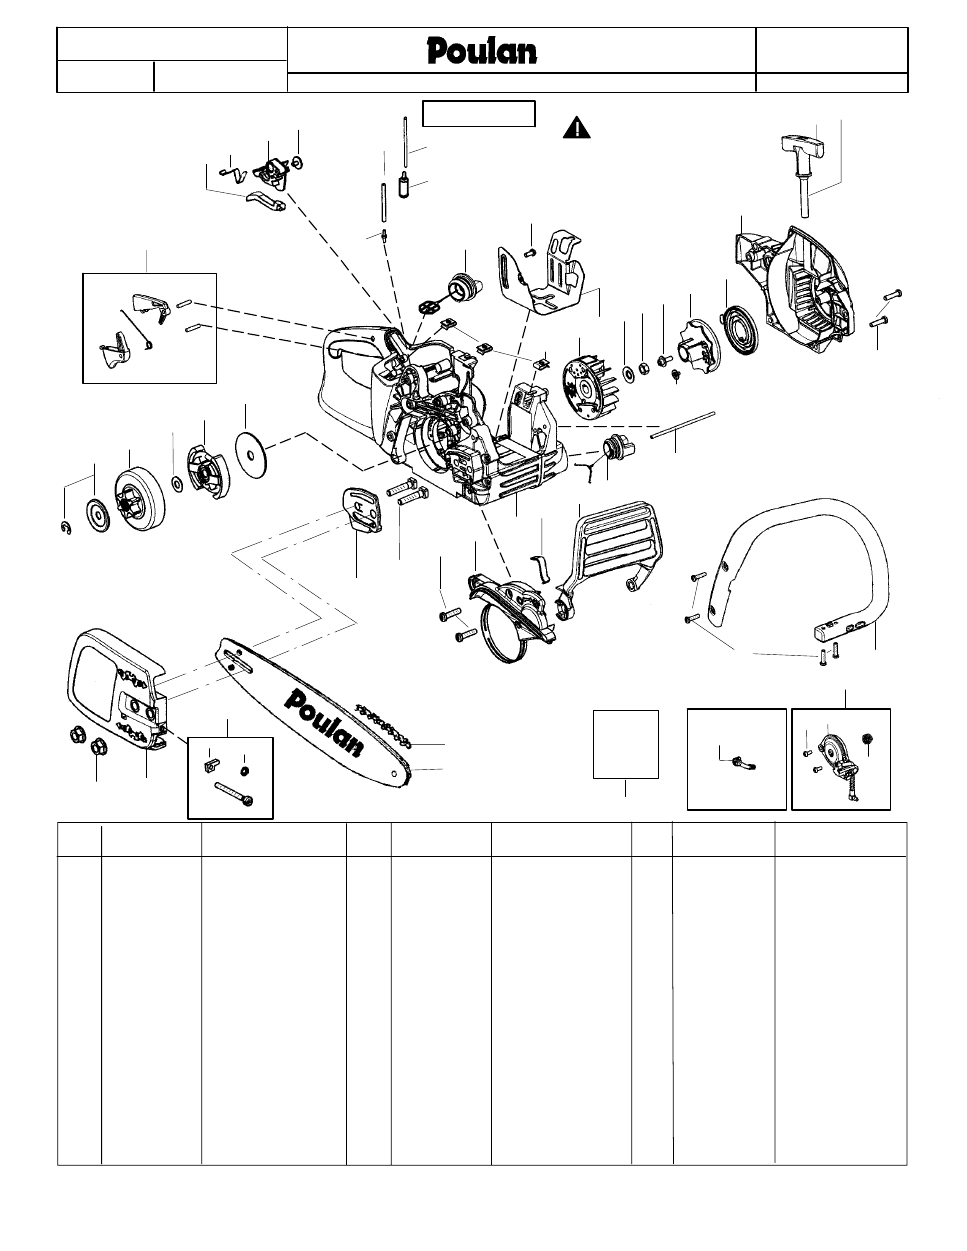 Stihl Chainsaw Parts Manual Online Engine Diagram Poulan Free Download Pages 967x1251